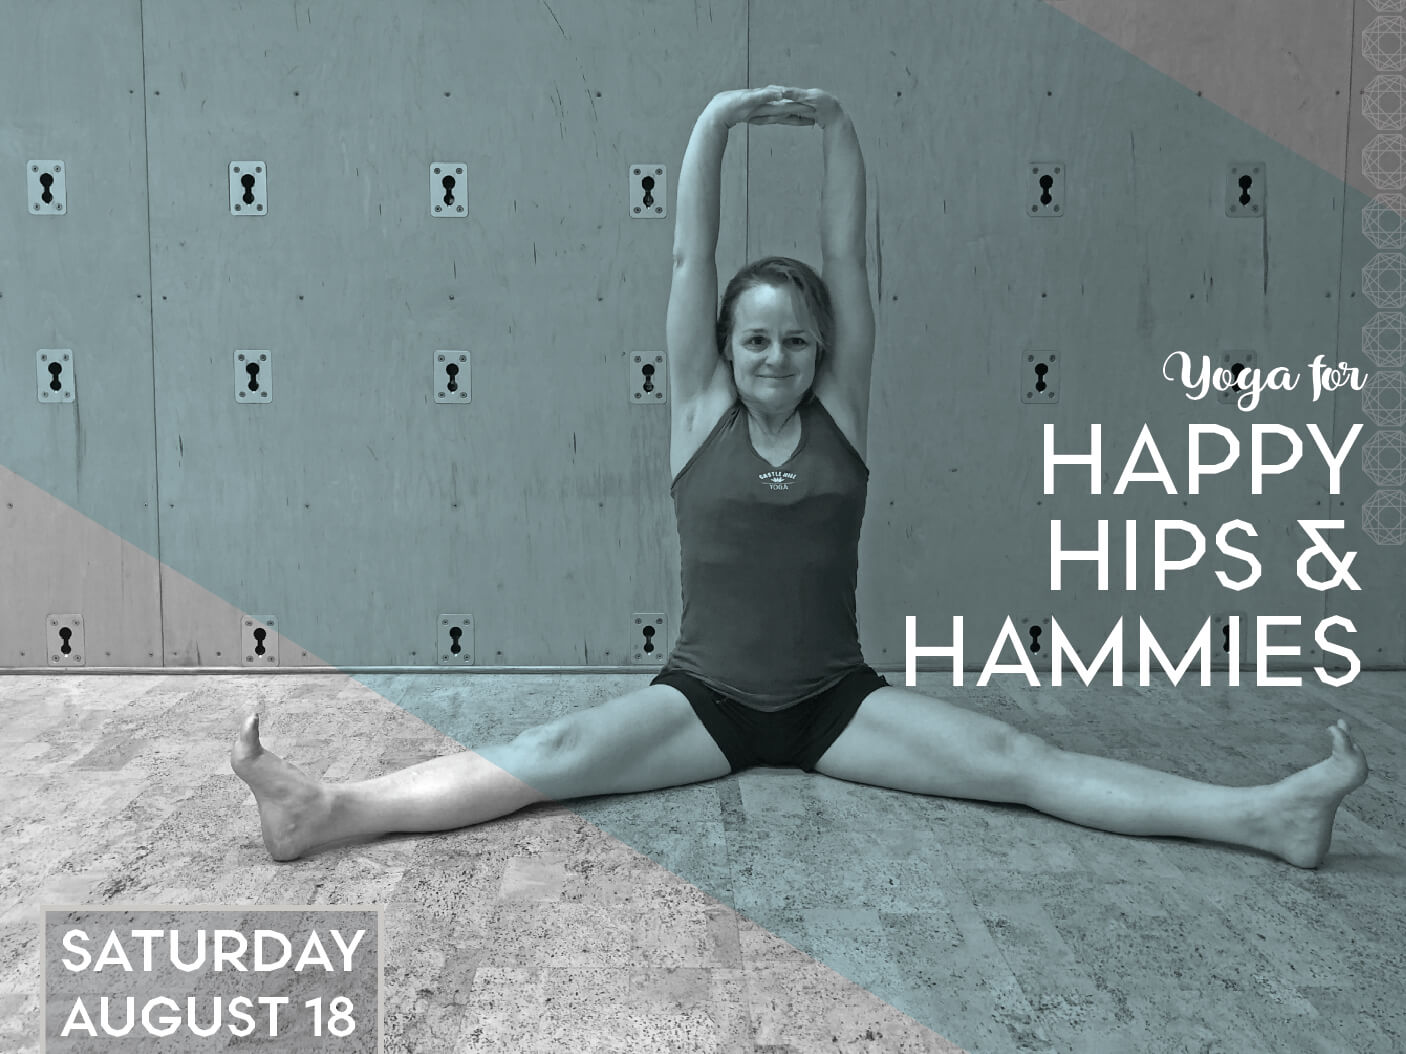 Yoga for Happy Hips & Hammies